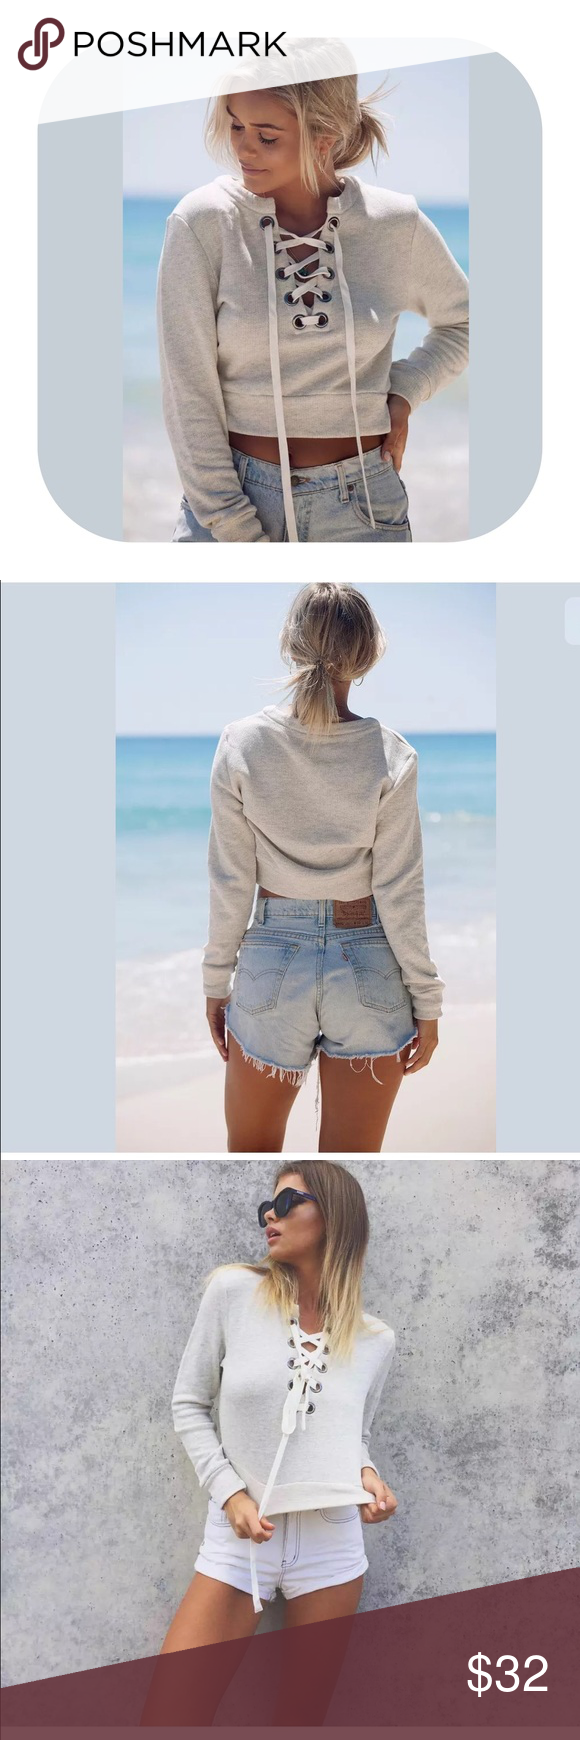 🎉comingsoon🎉 tie up long sleeve crop hoodie top Brand new with tag. Get 15% off when you buy two or more. It will be coming in in around 2 weeks. If you would like to get notified, simply press like or leave me a message. I will let you know. Tops Tees - Long Sleeve